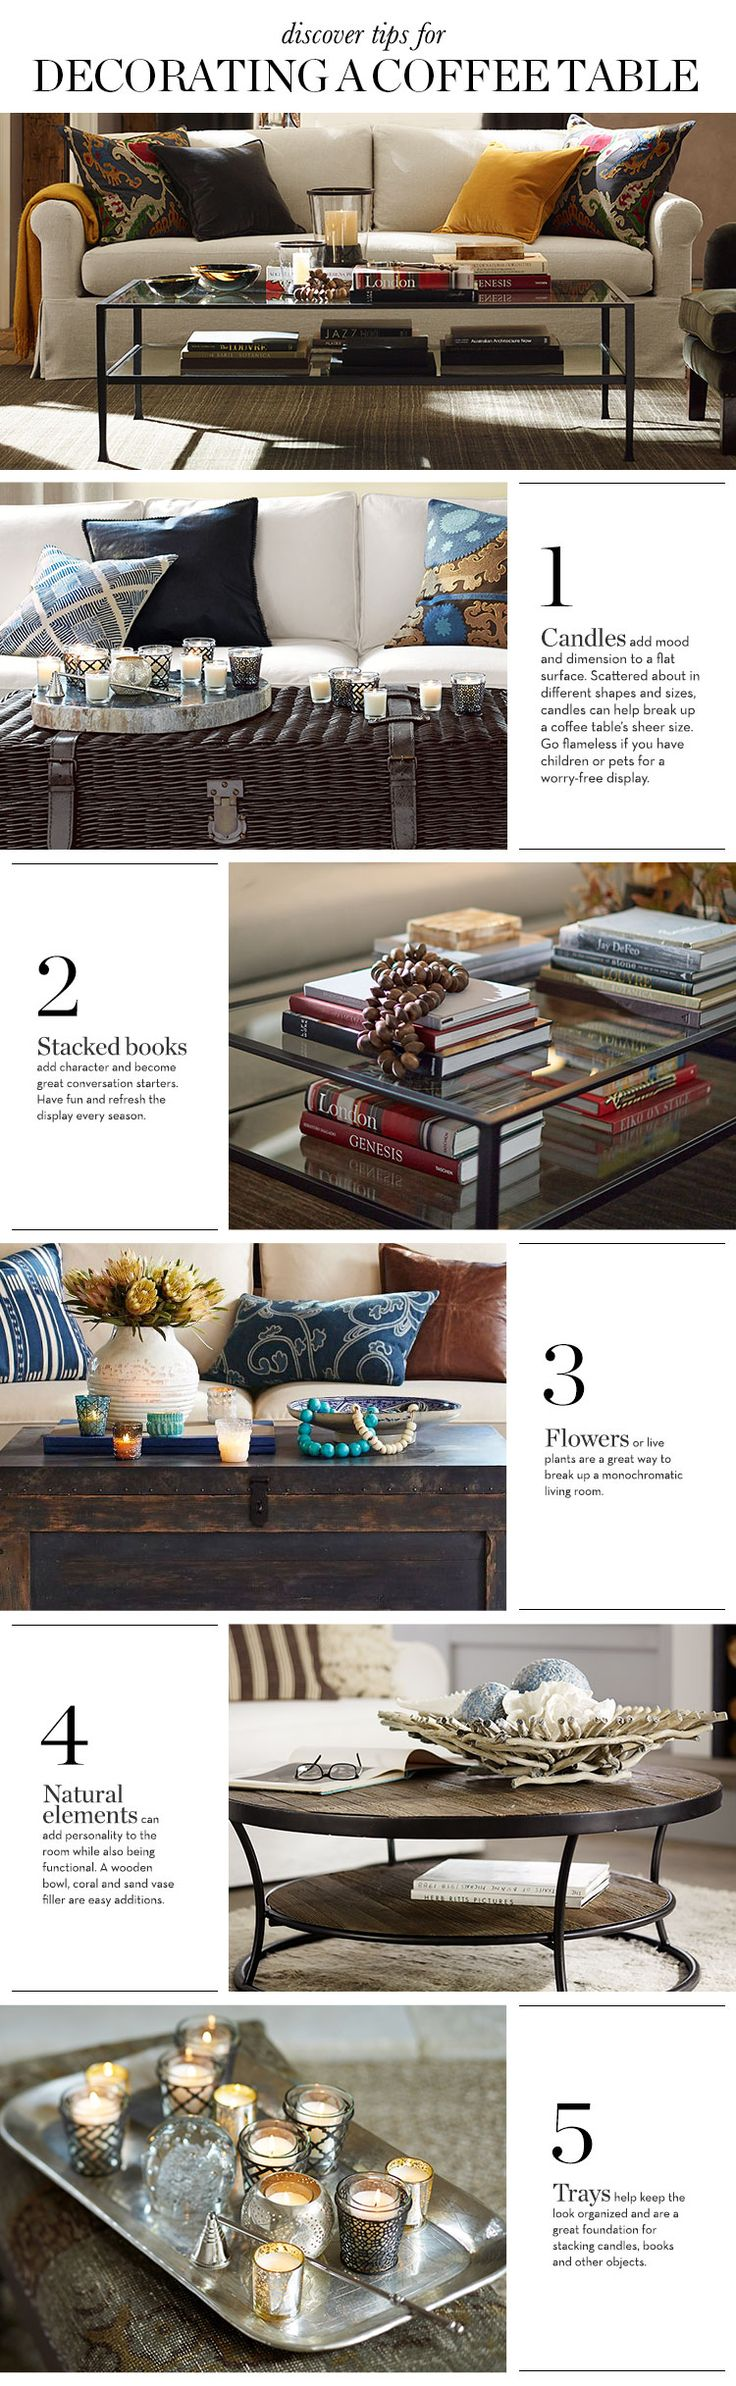 Discover tips for decorating a coffee table.